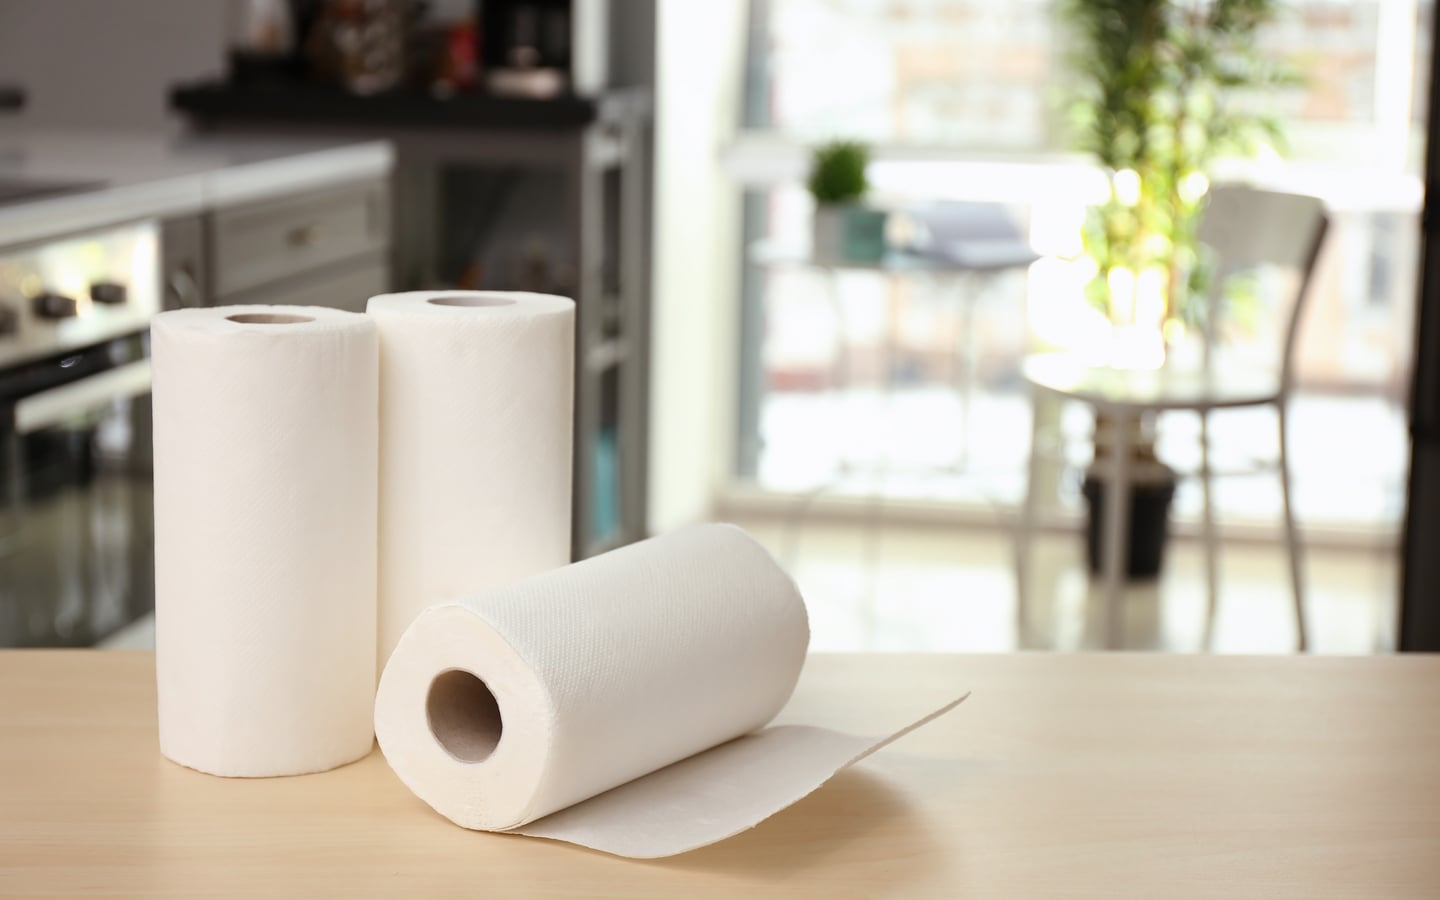 Use cloth instead of tissues as one of the ways to make your home eco-friendly